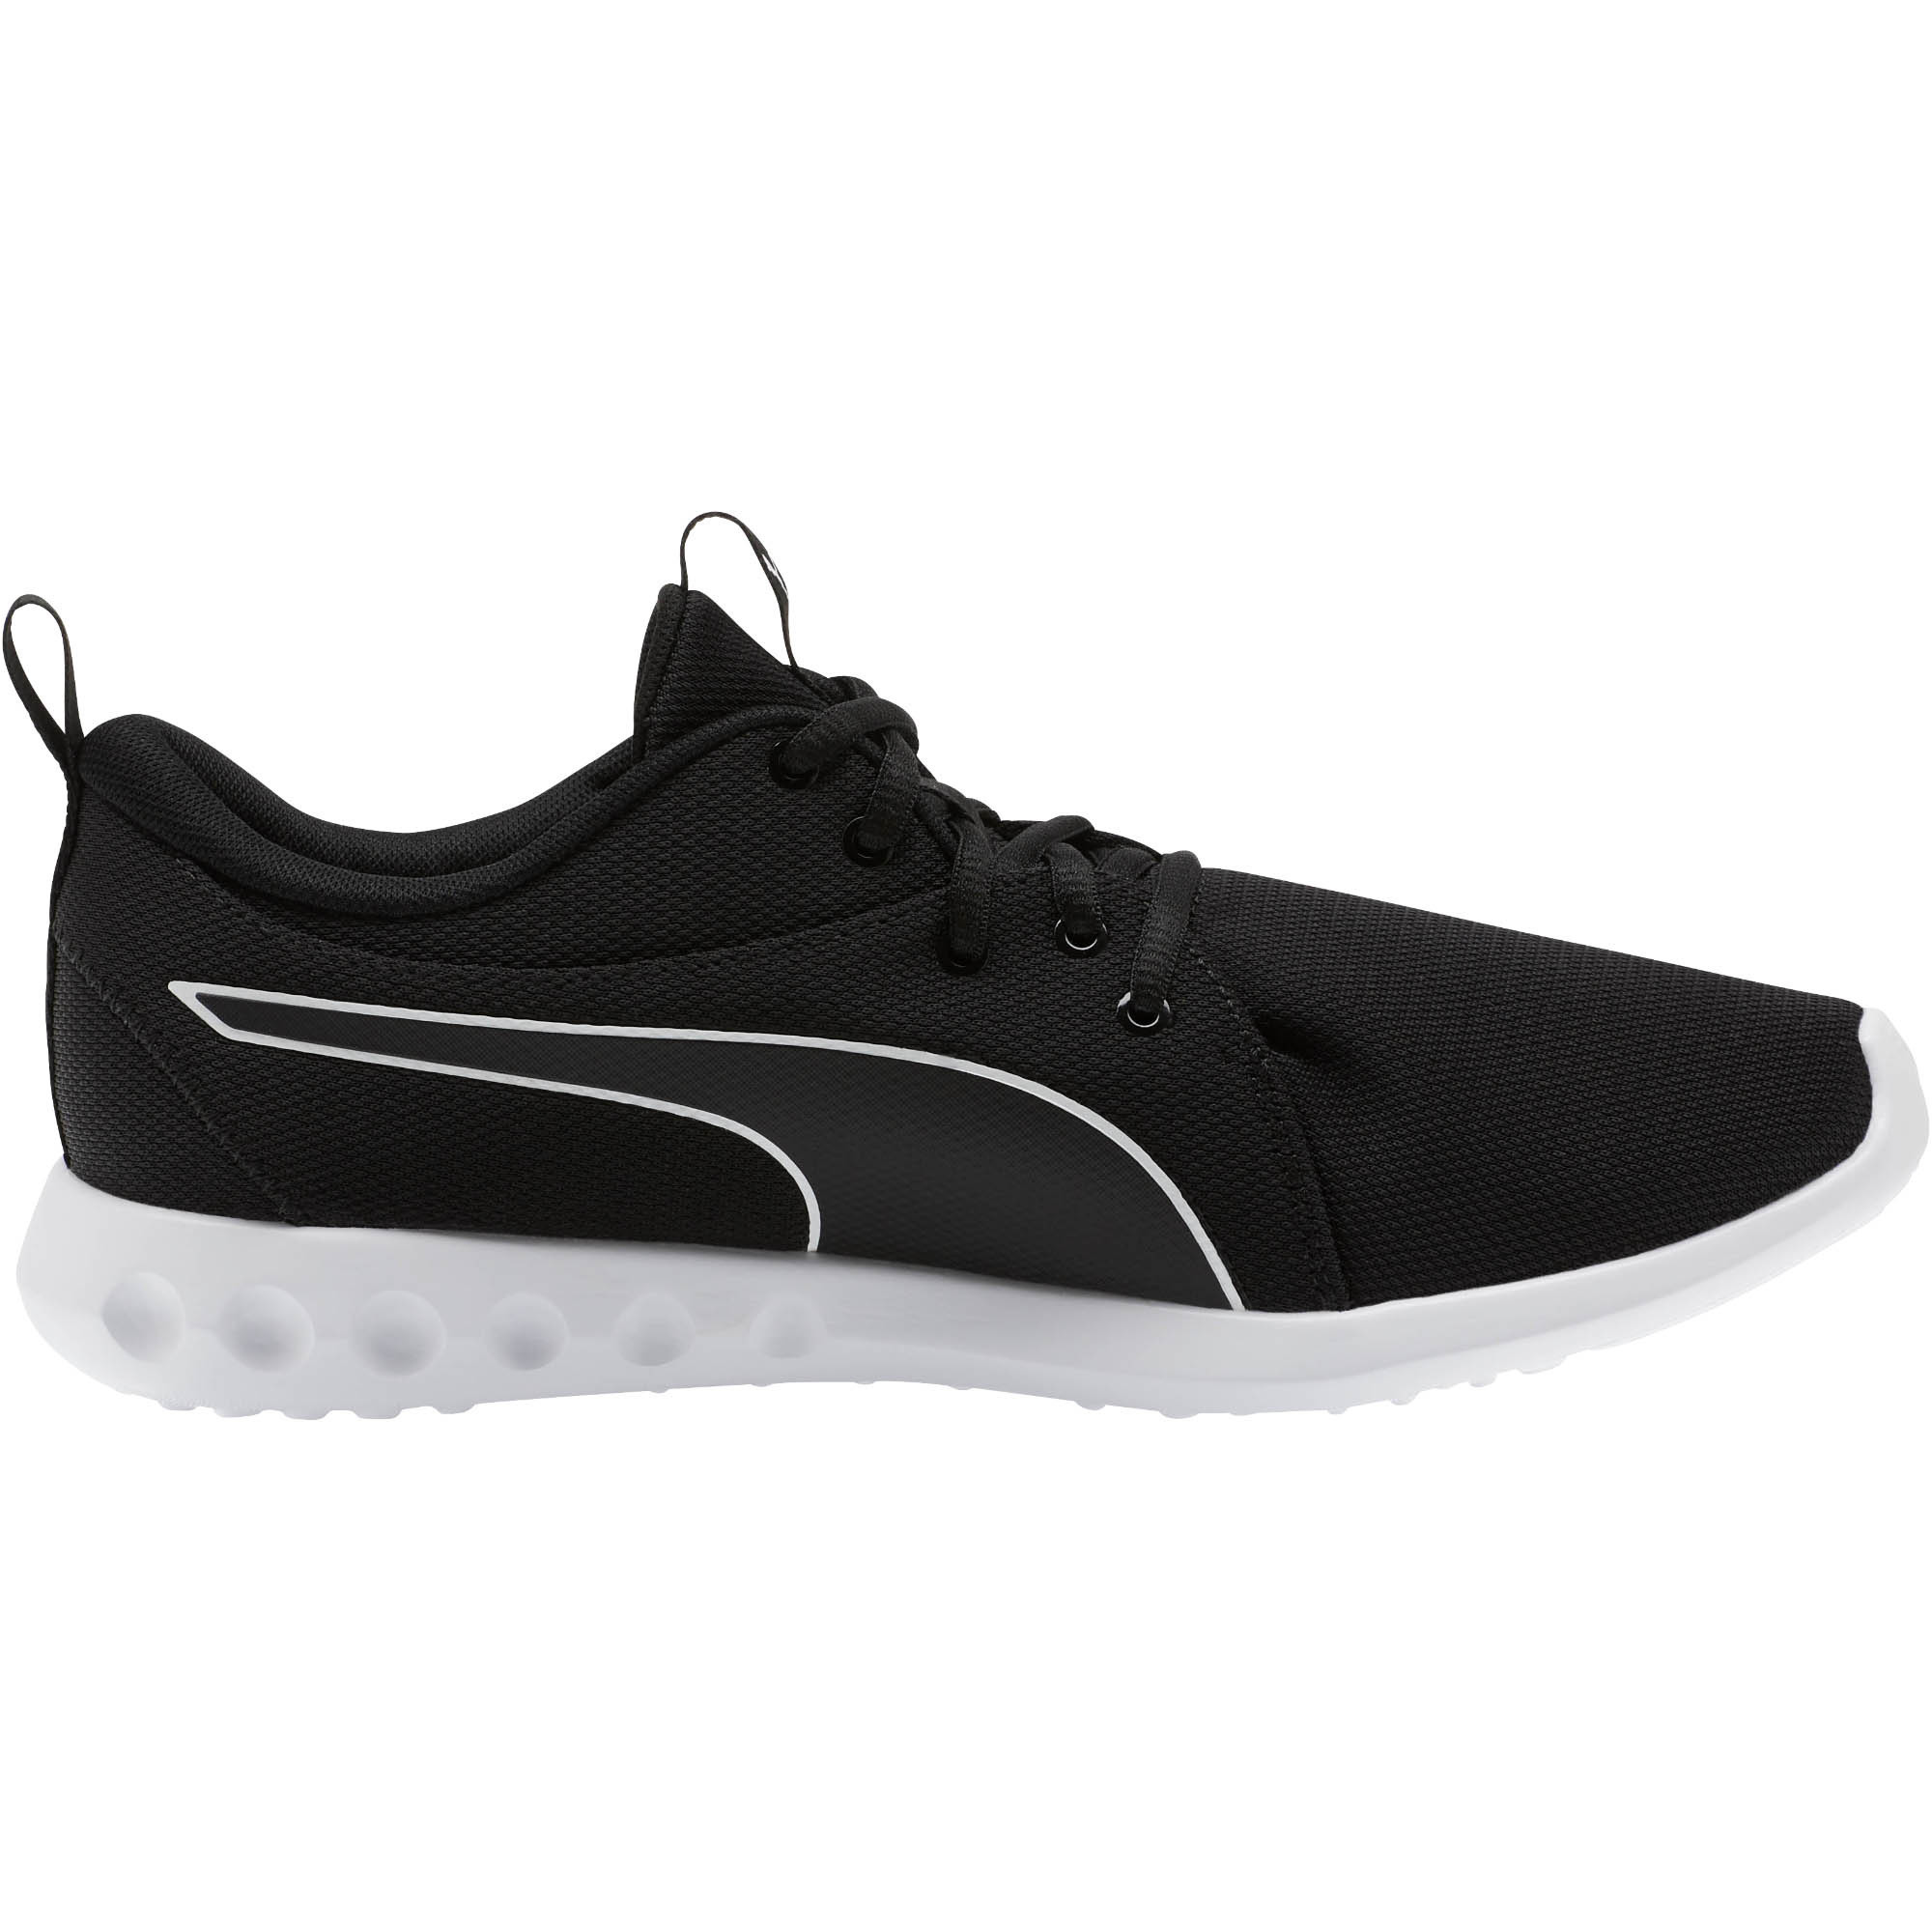 PUMA-Men-039-s-Carson-2-Cosmo-Running-Shoes thumbnail 5